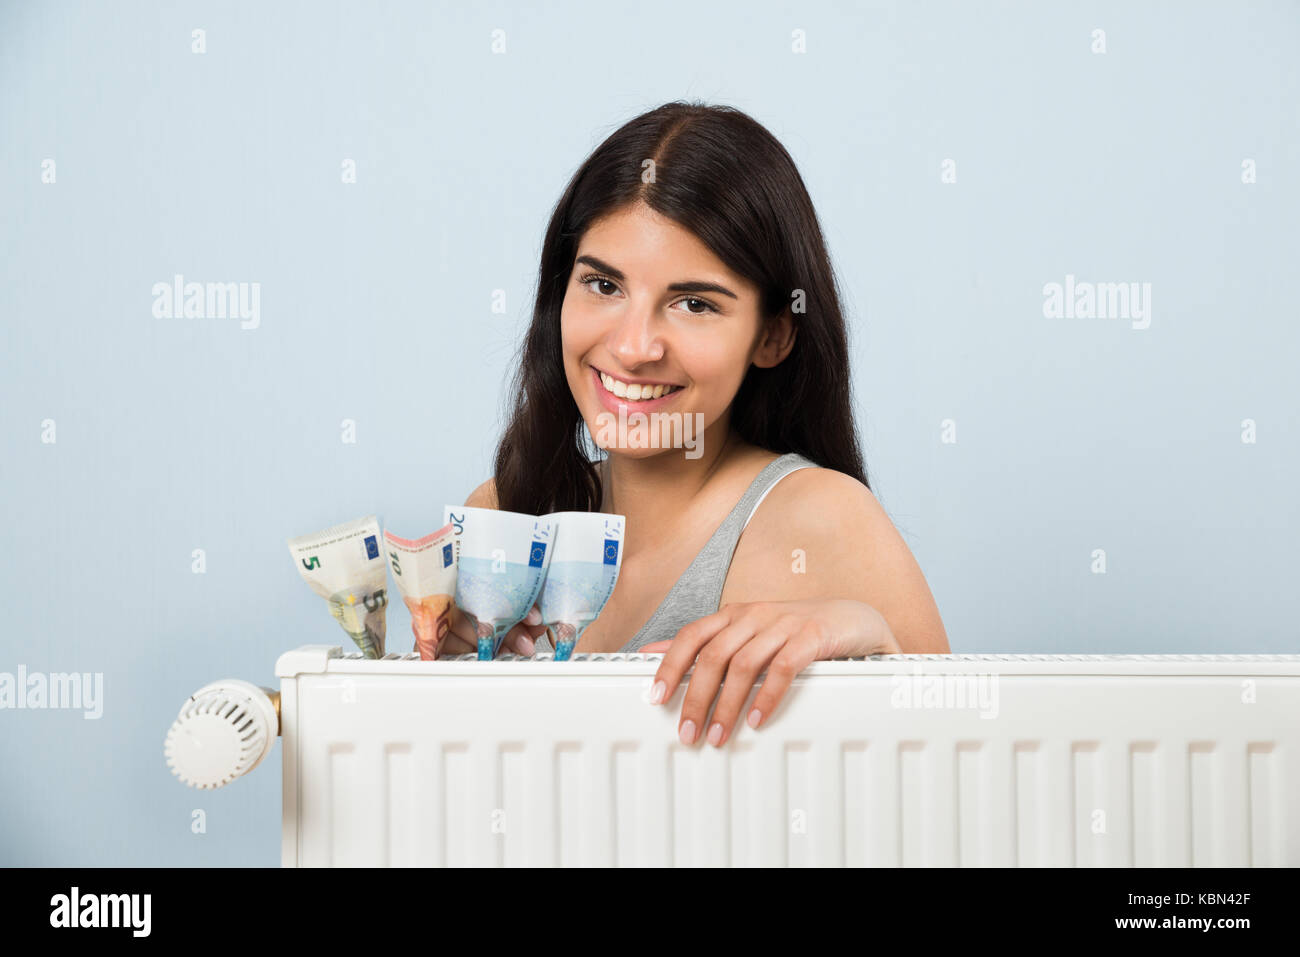 Young Happy Woman With Banknote Inside White Radiator - Stock Image